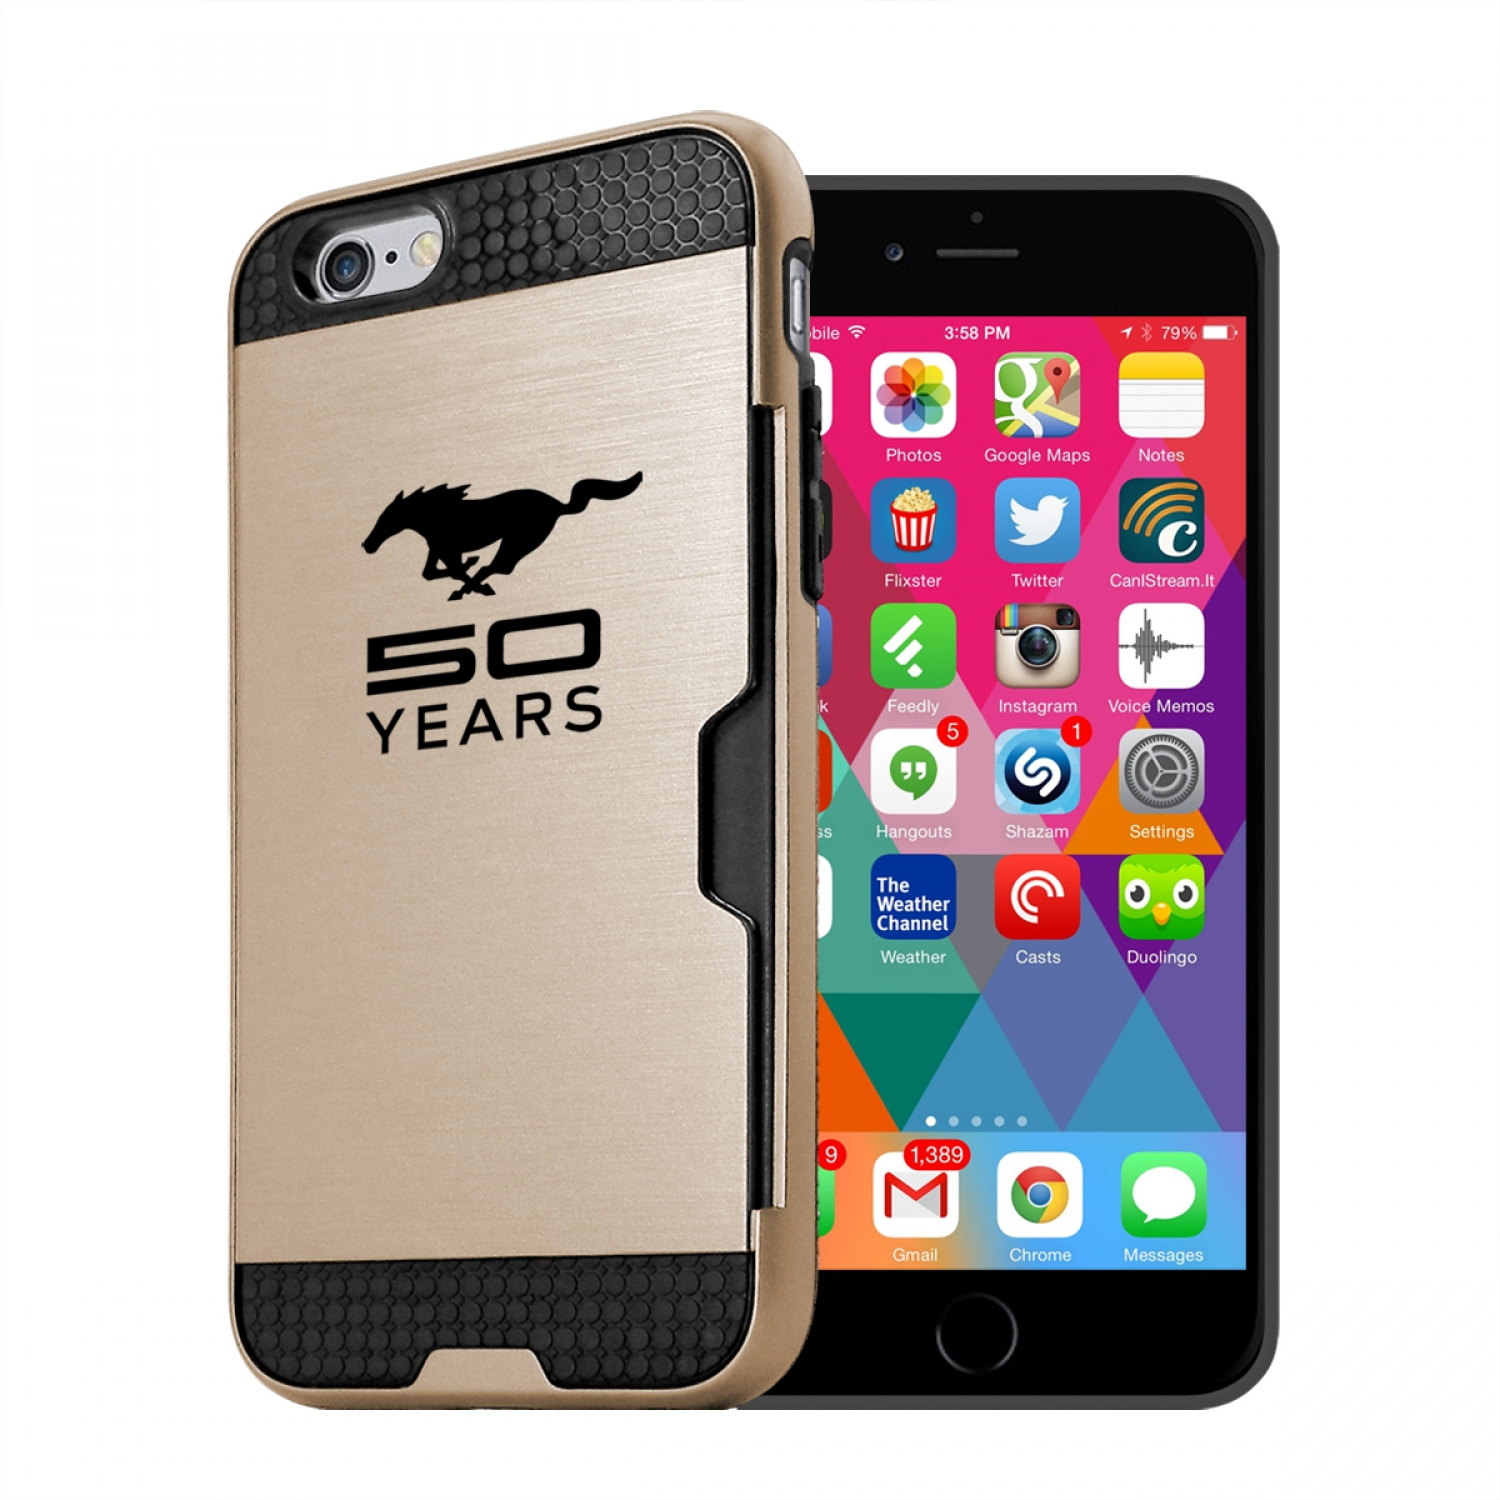 Ford Mustang 50 Years iPhone 6 6s Ultra Thin TPU Golden Phone Case with Credit Card Slot Wallet